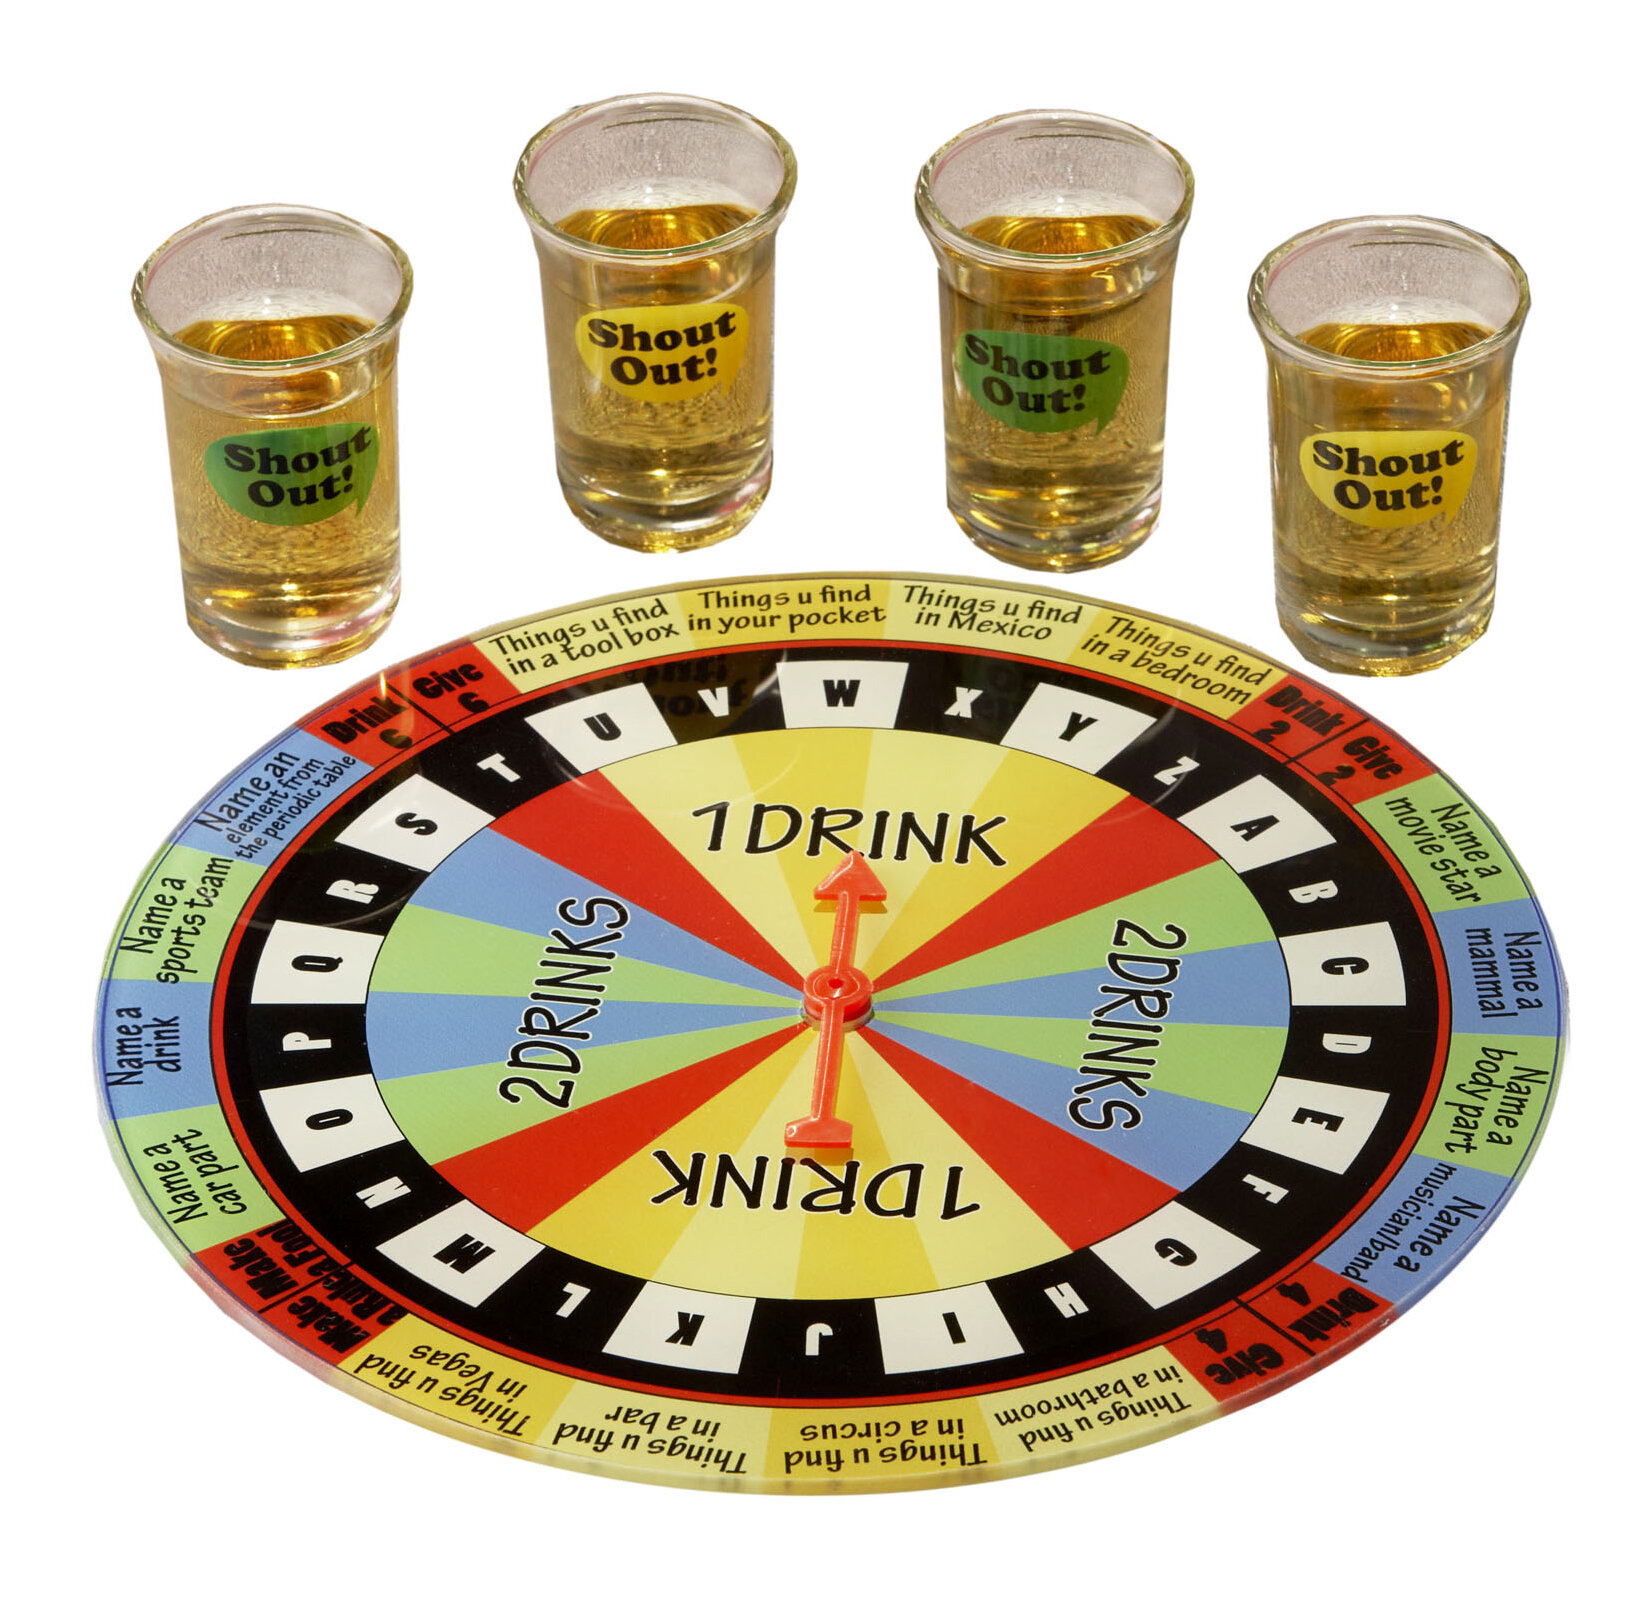 Drinking roulette board game rules poker atlas los angeles upcoming